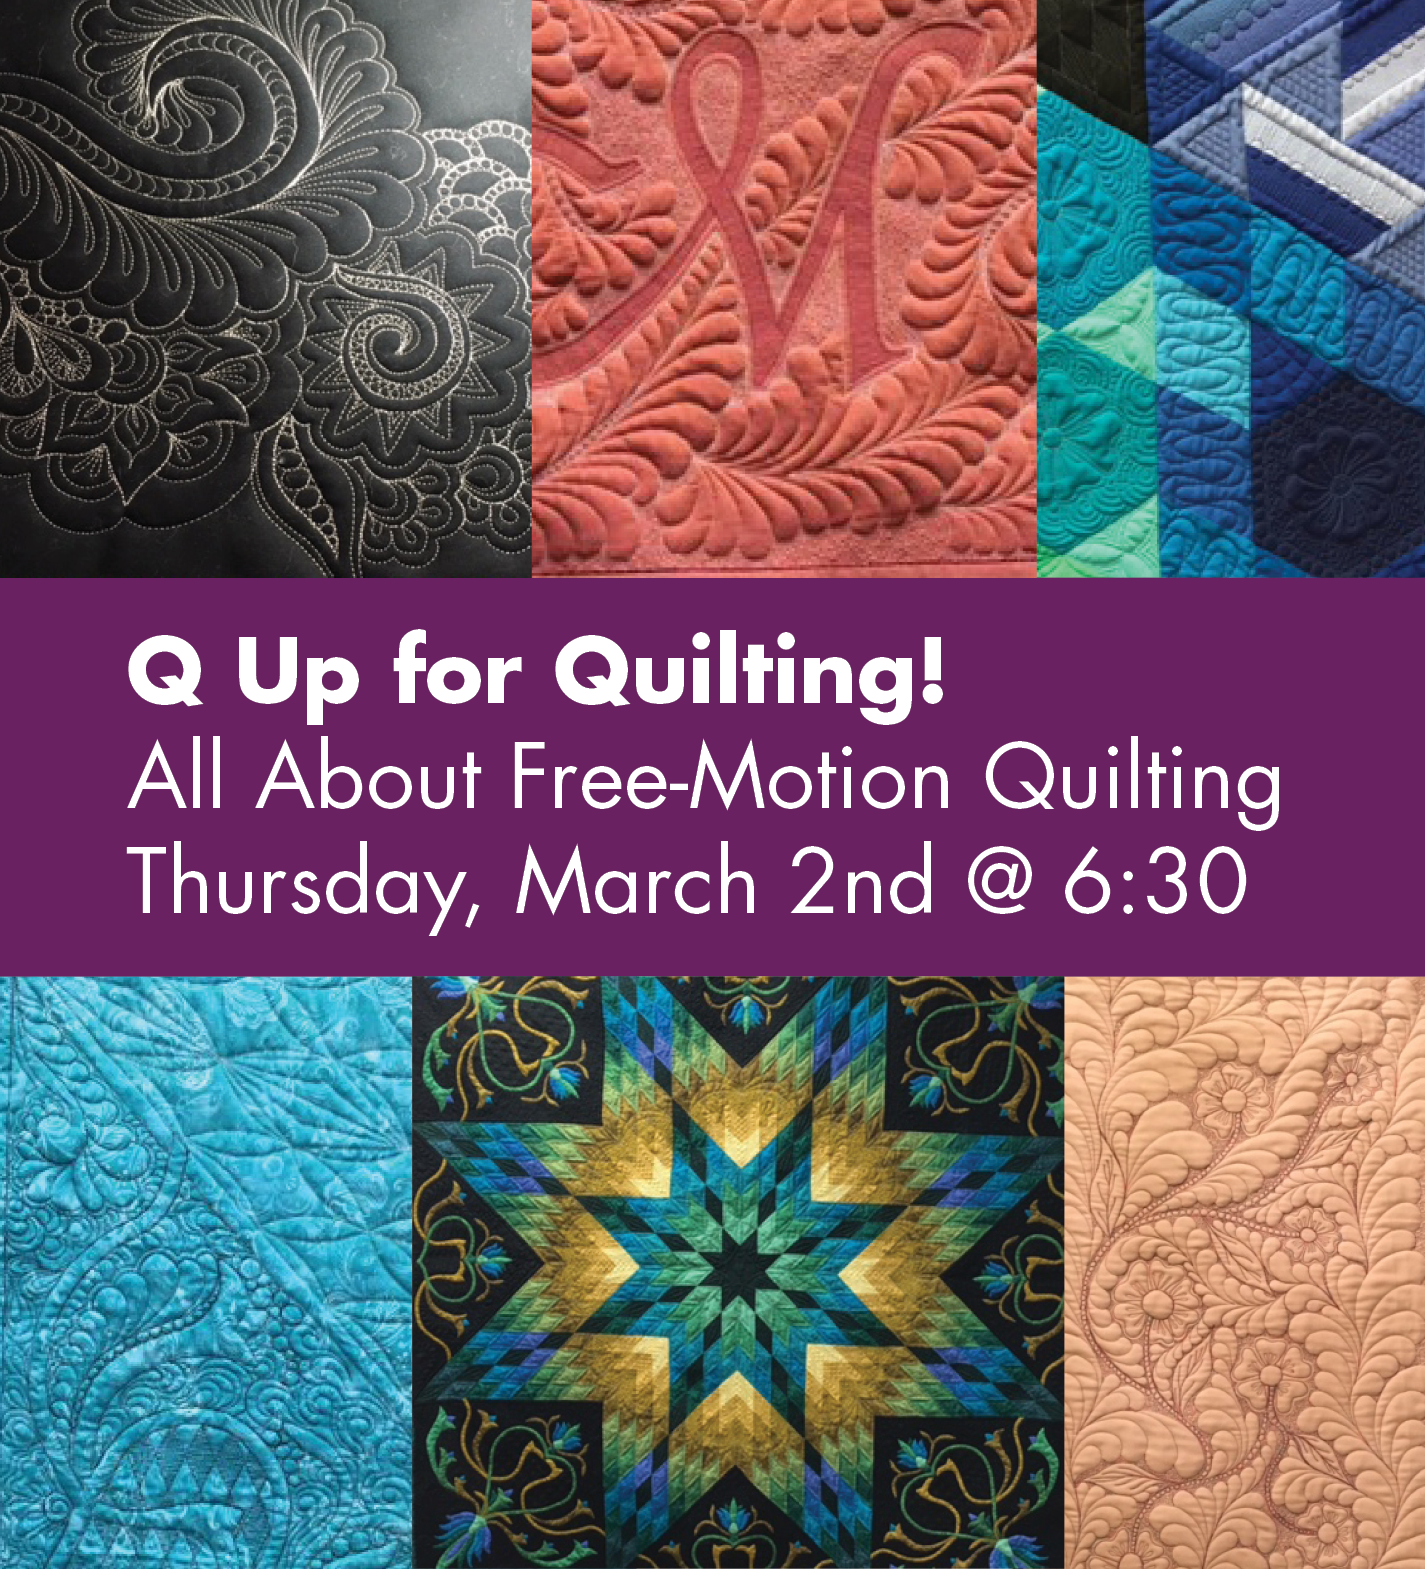 Q Up for Quilting!